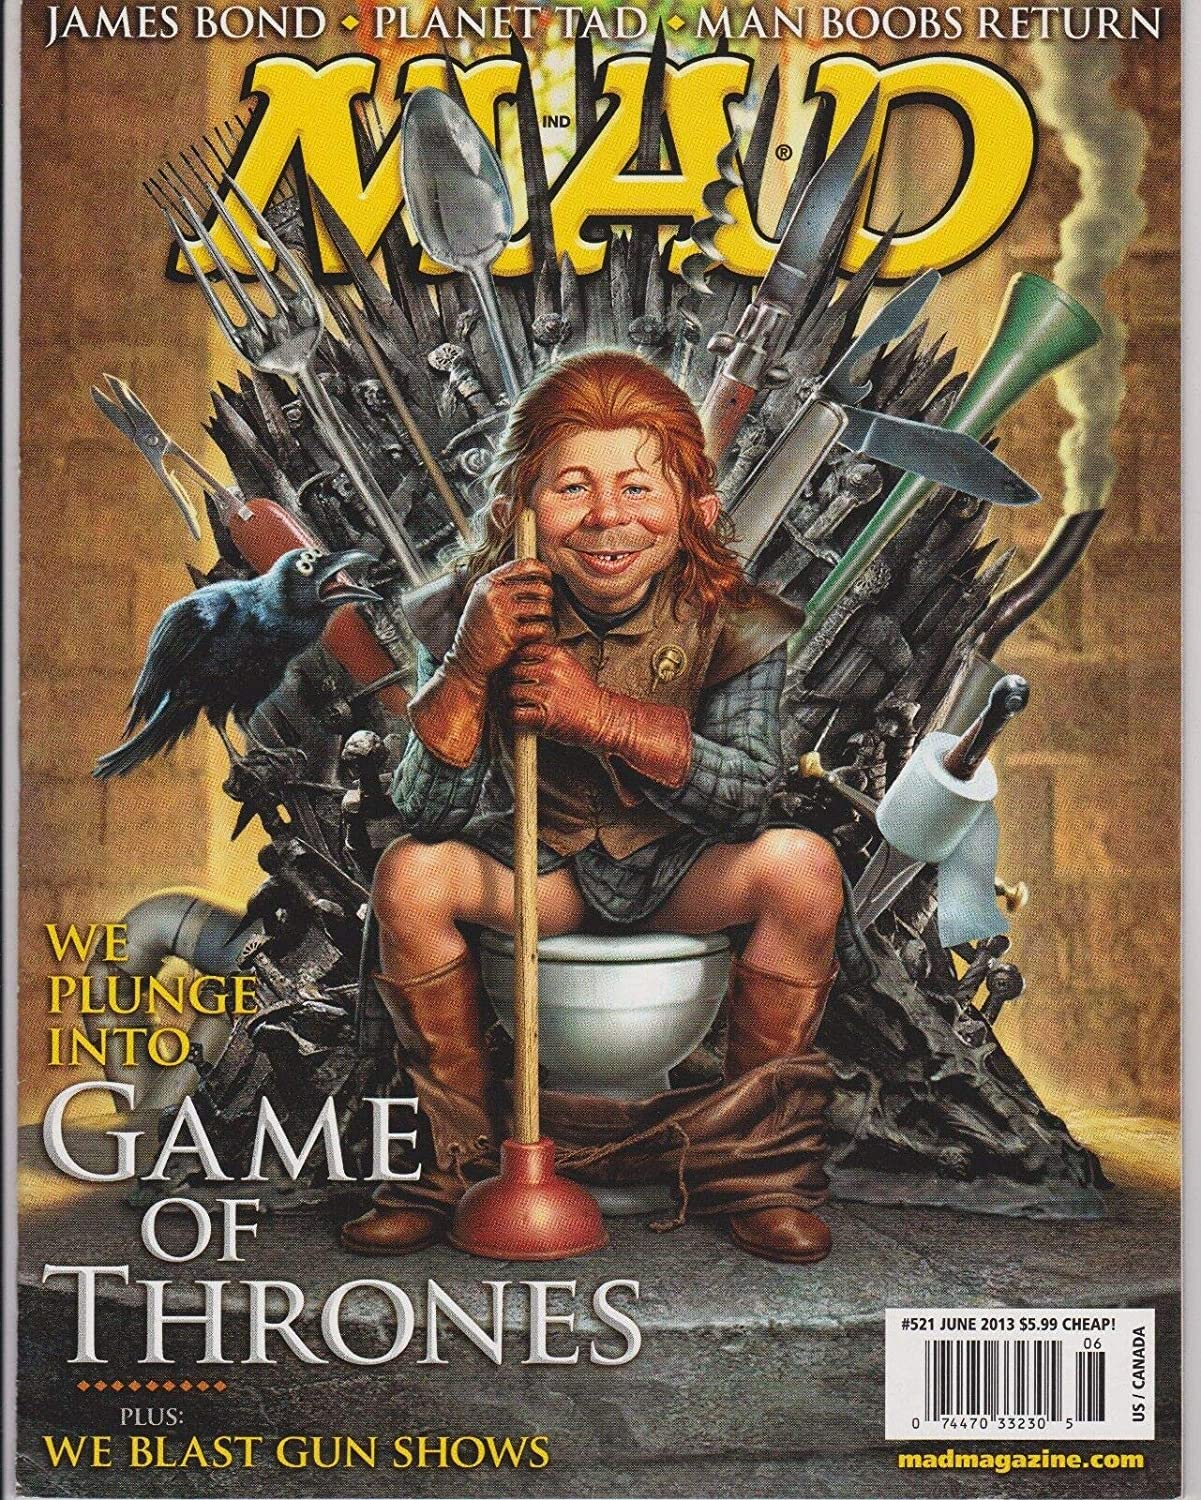 MAD MAGAZINE #521 June 2013, Game of Thrones, James Bond, NO LABLE